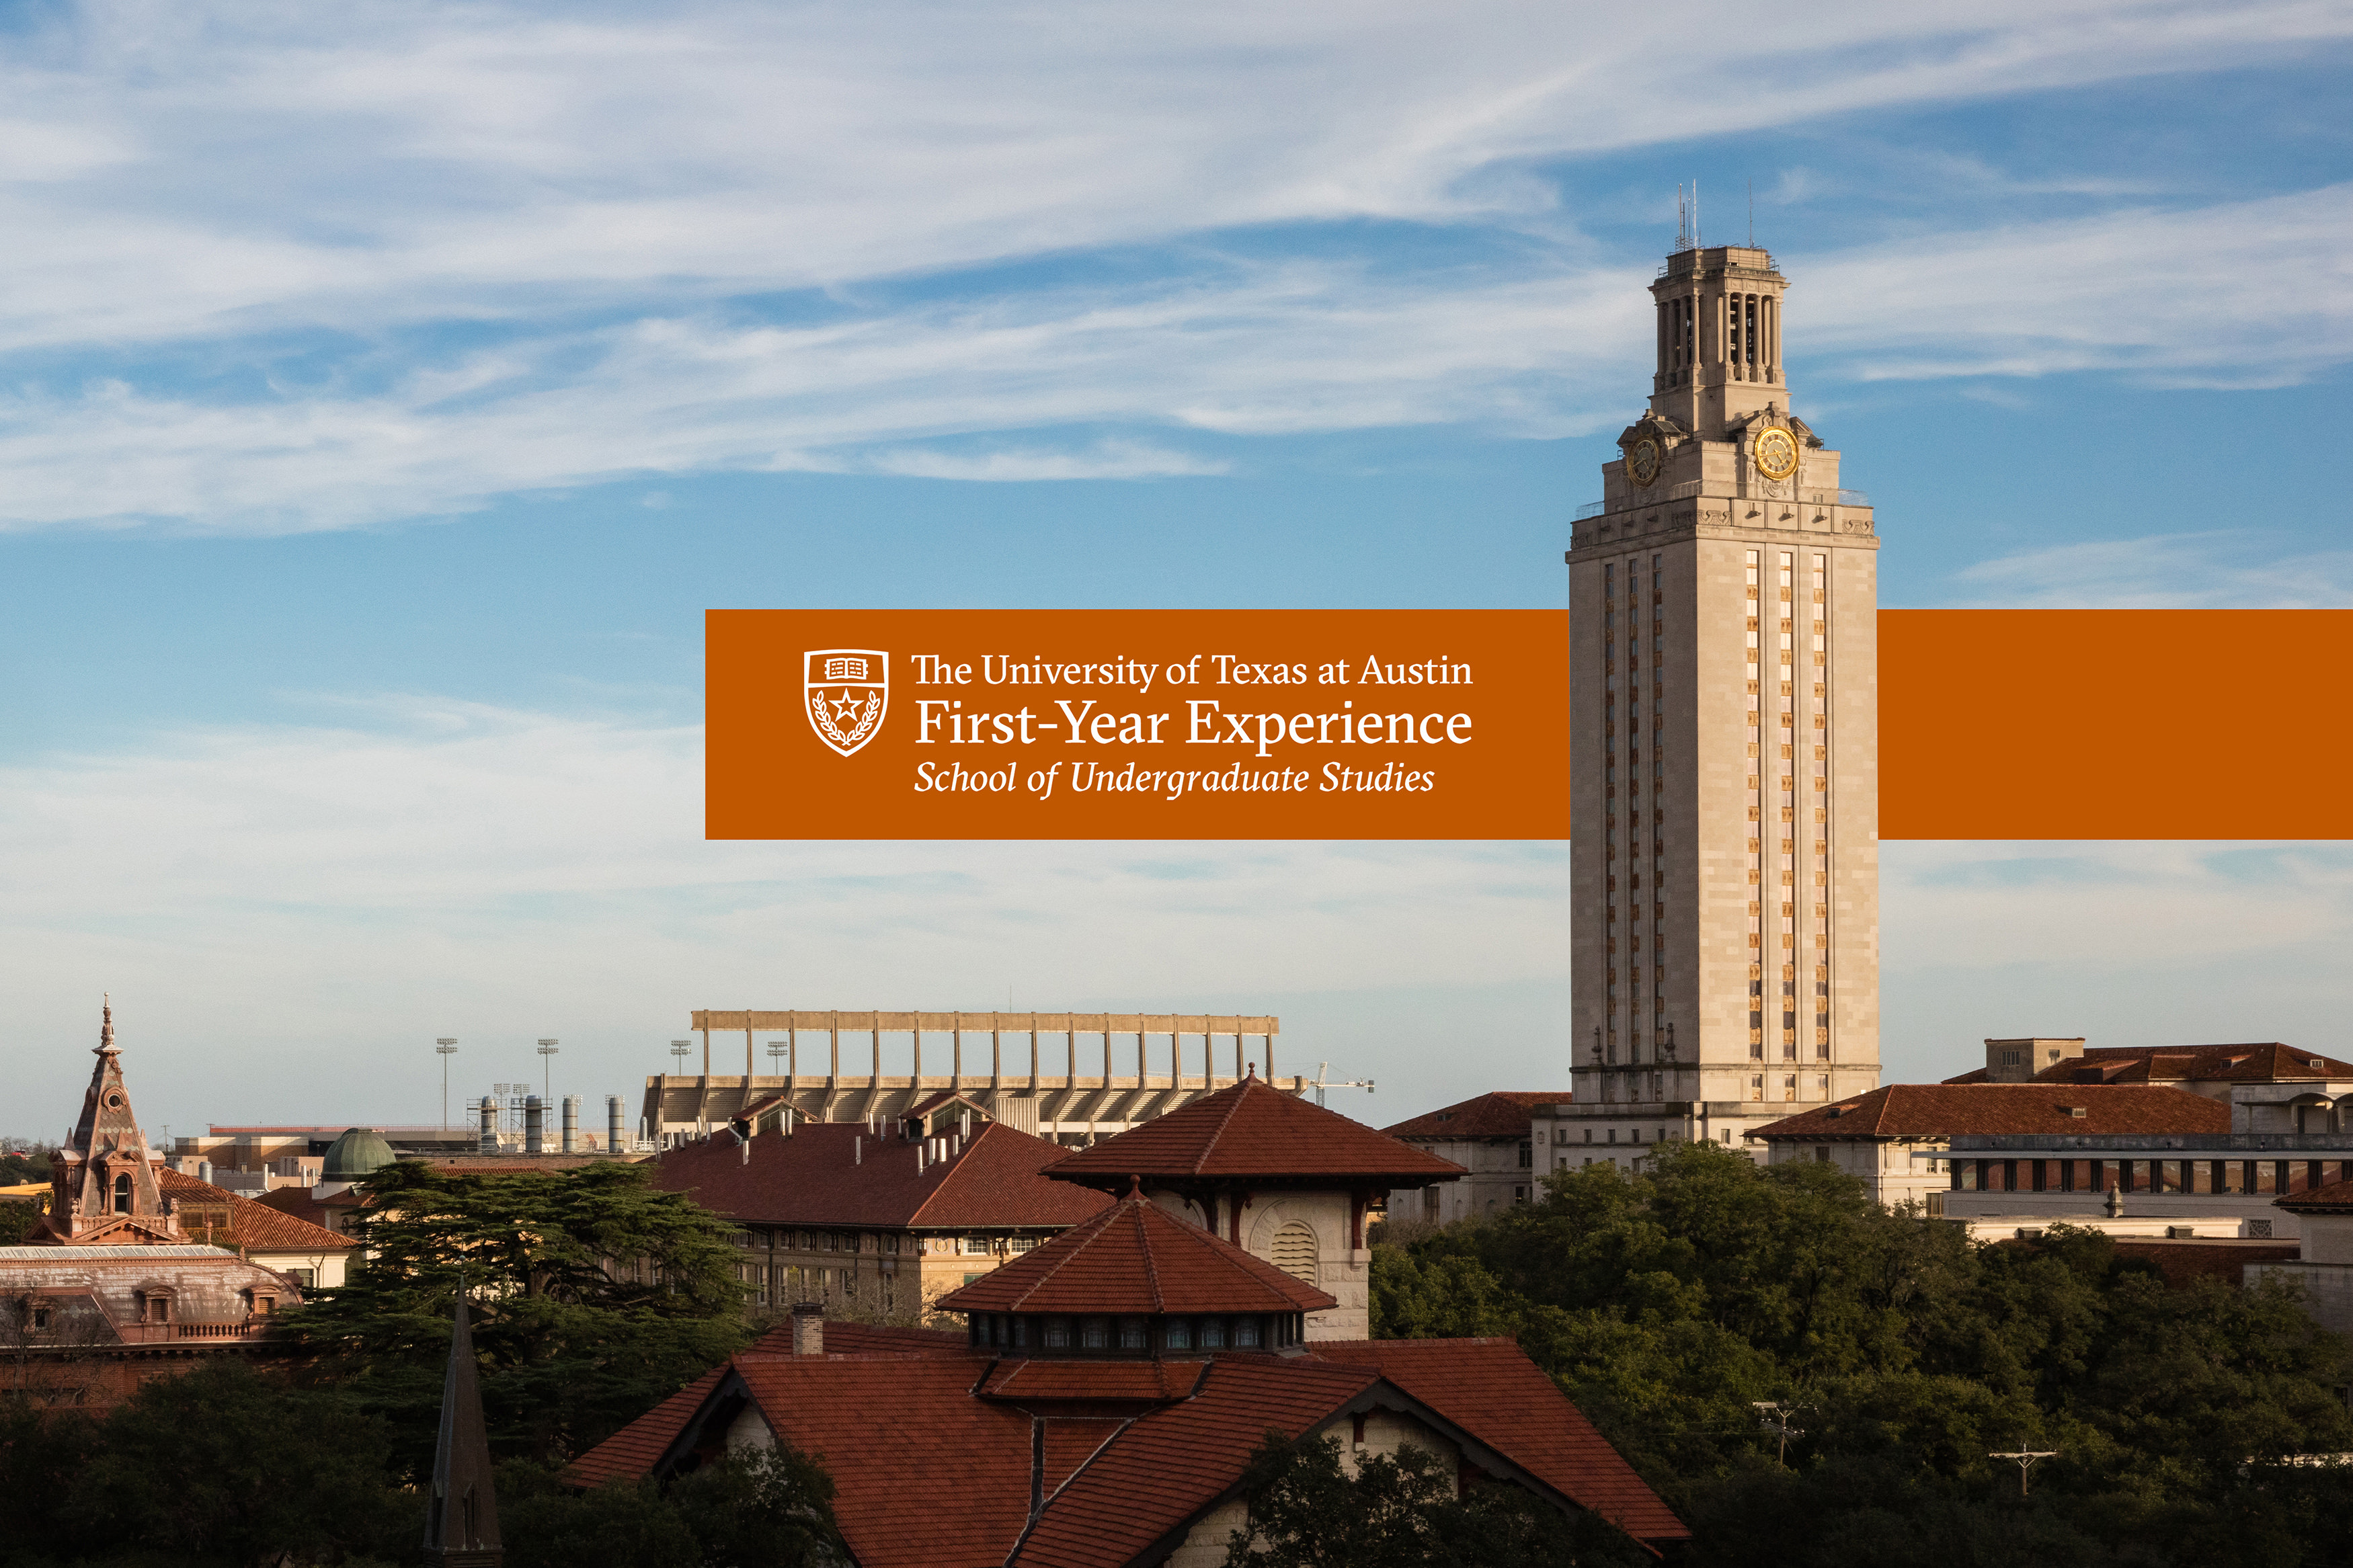 First-Year Experience Logo with a view of campus